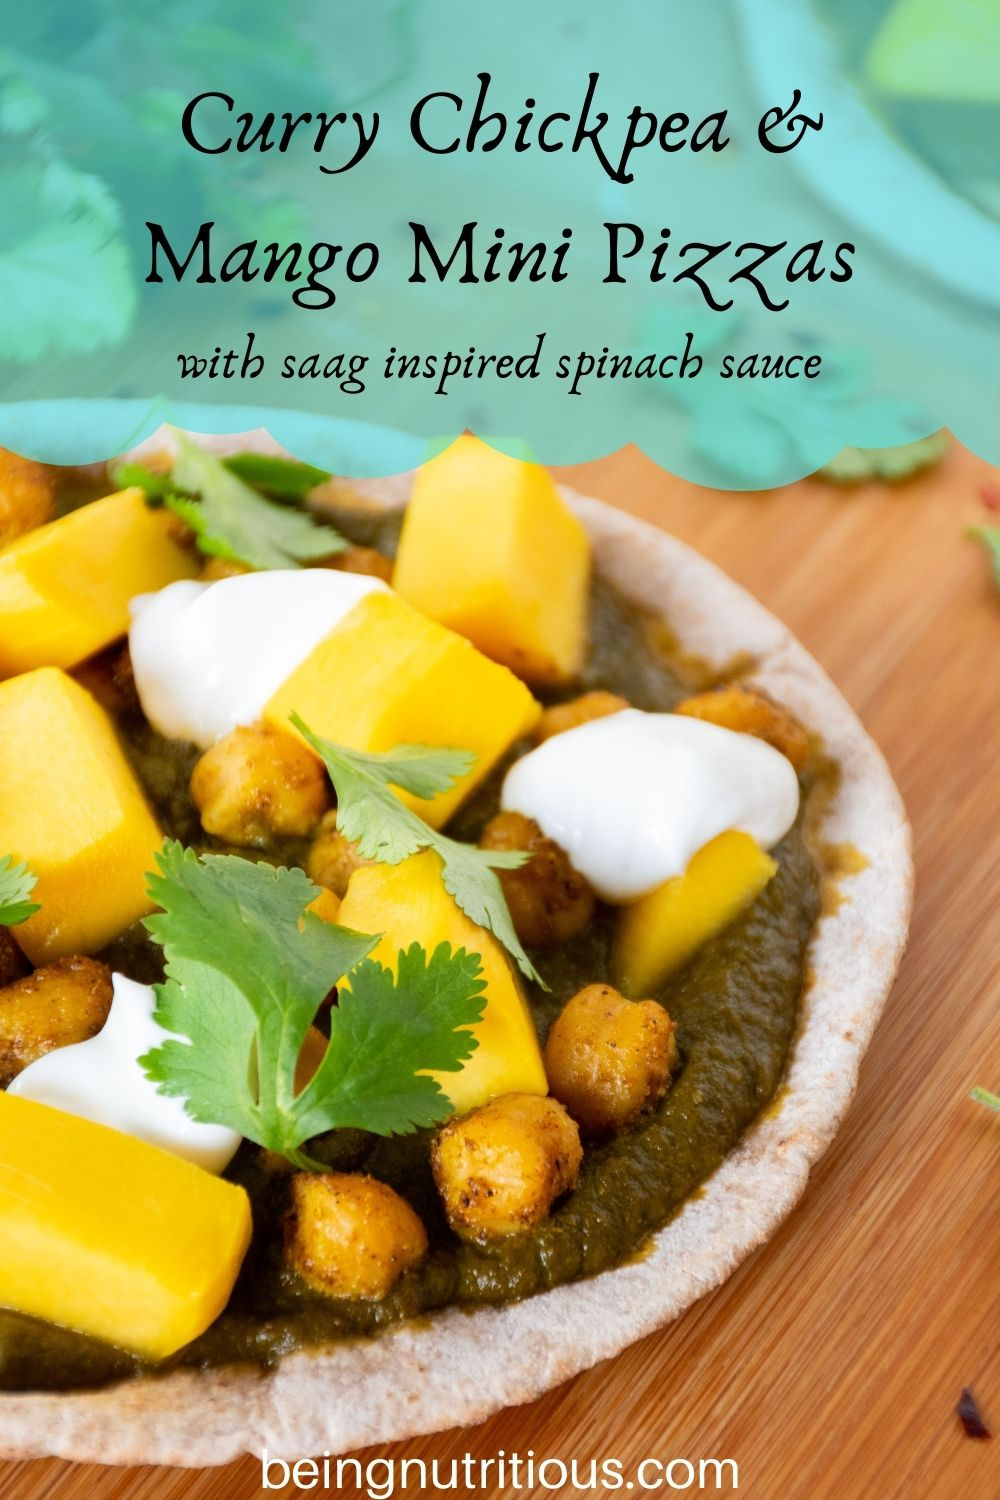 pizza with spinach sauce, chickpeas, and mangoes on a mini pita. Text overlay: Curry Chickpea & mango mini pizzas; with saag inspired spinach sauce.